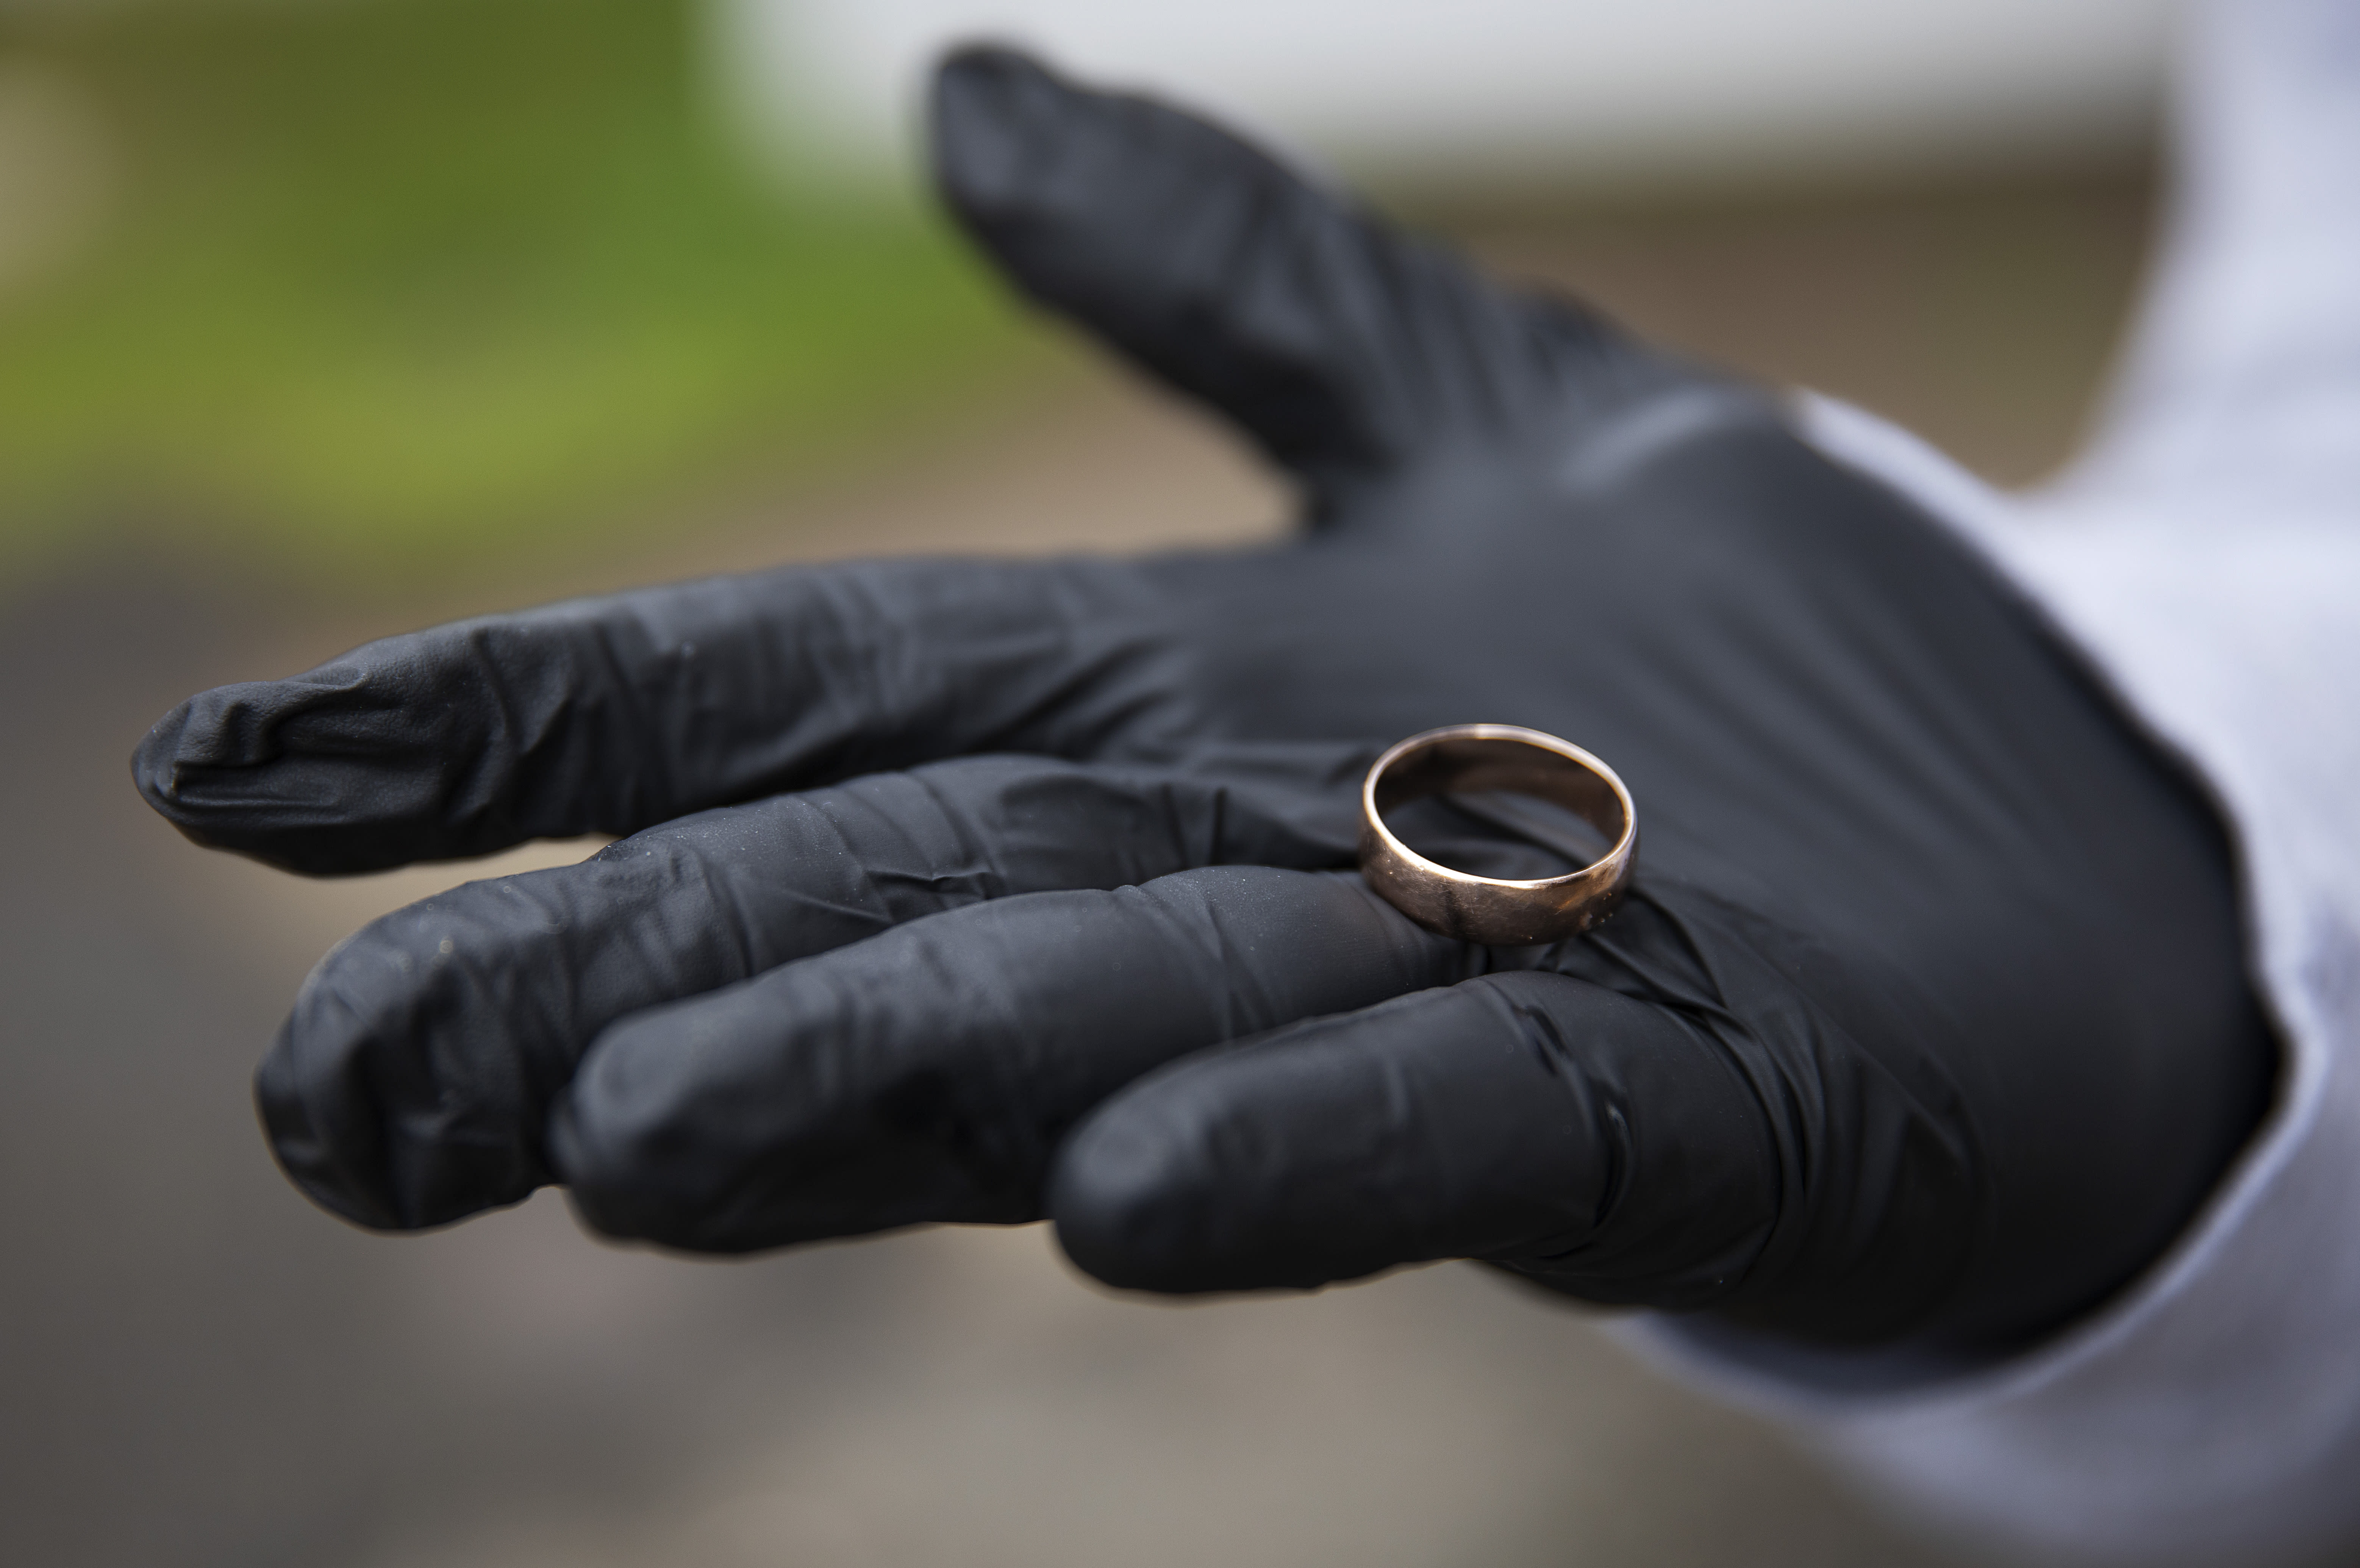 """Michael Tokar holds the ring of his father, David Tokar, after it was returned to him before his burial at Mount Richmond Cemetery in the Staten Island borough of New York, Wednesday April 8, 2020. """"My father wore this ring all his life and I want to keep it for me. It's the best memory. It's like part of my father."""" (AP Photo/David Goldman)"""